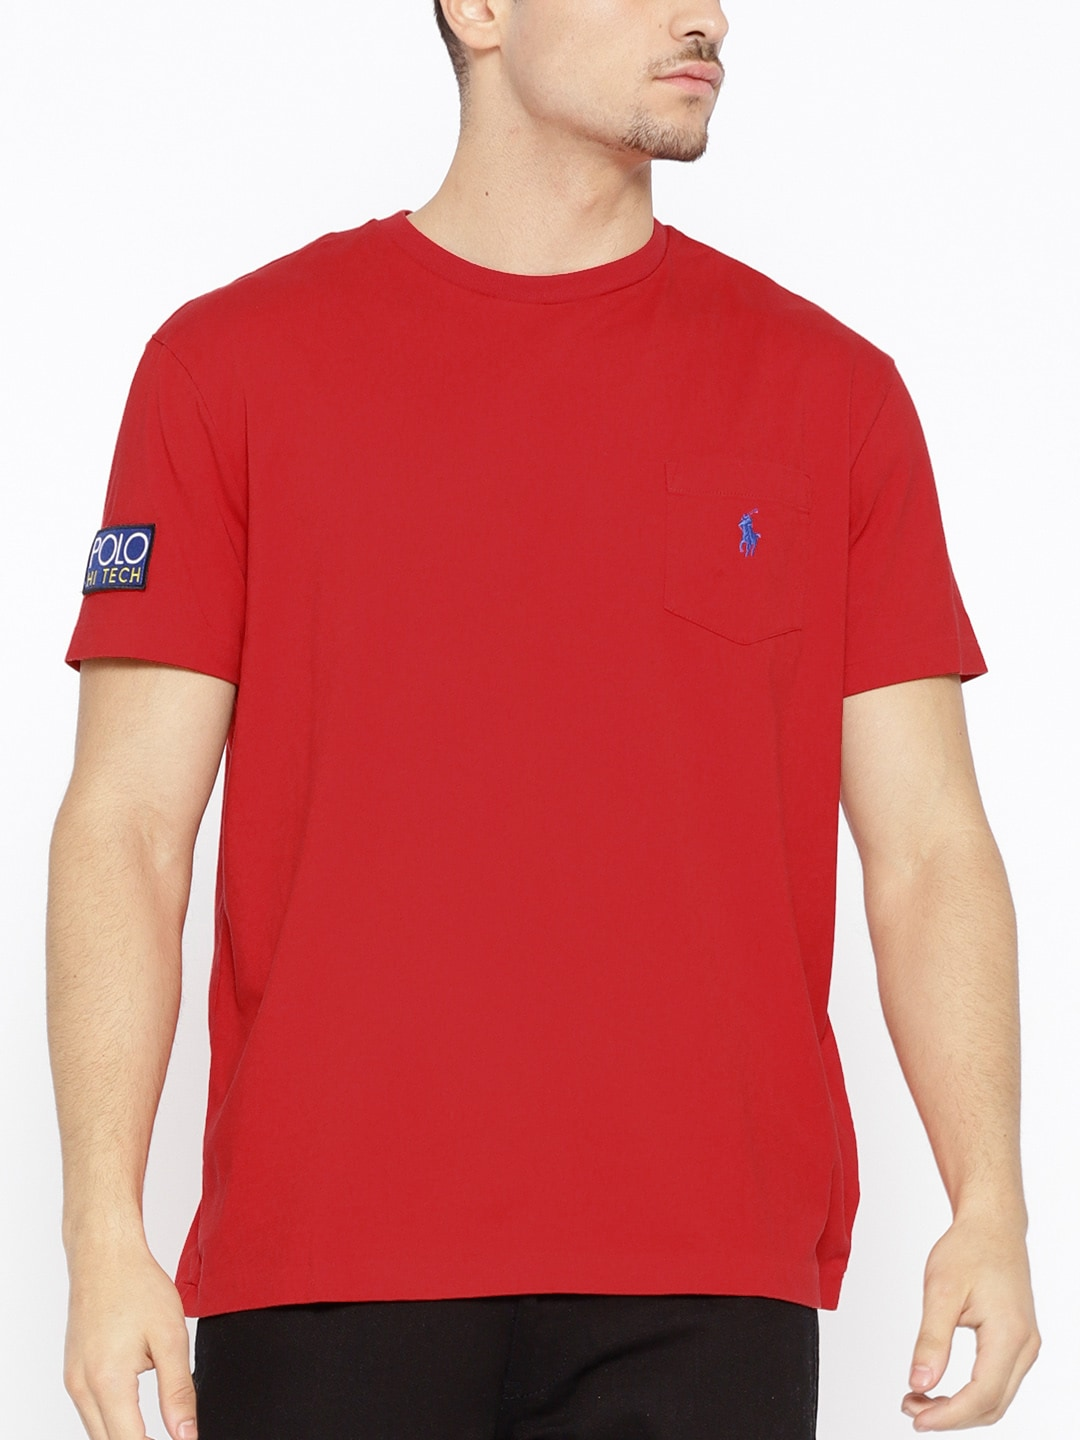 cc4034454f6 Men T-shirts - Buy T-shirt for Men Online in India